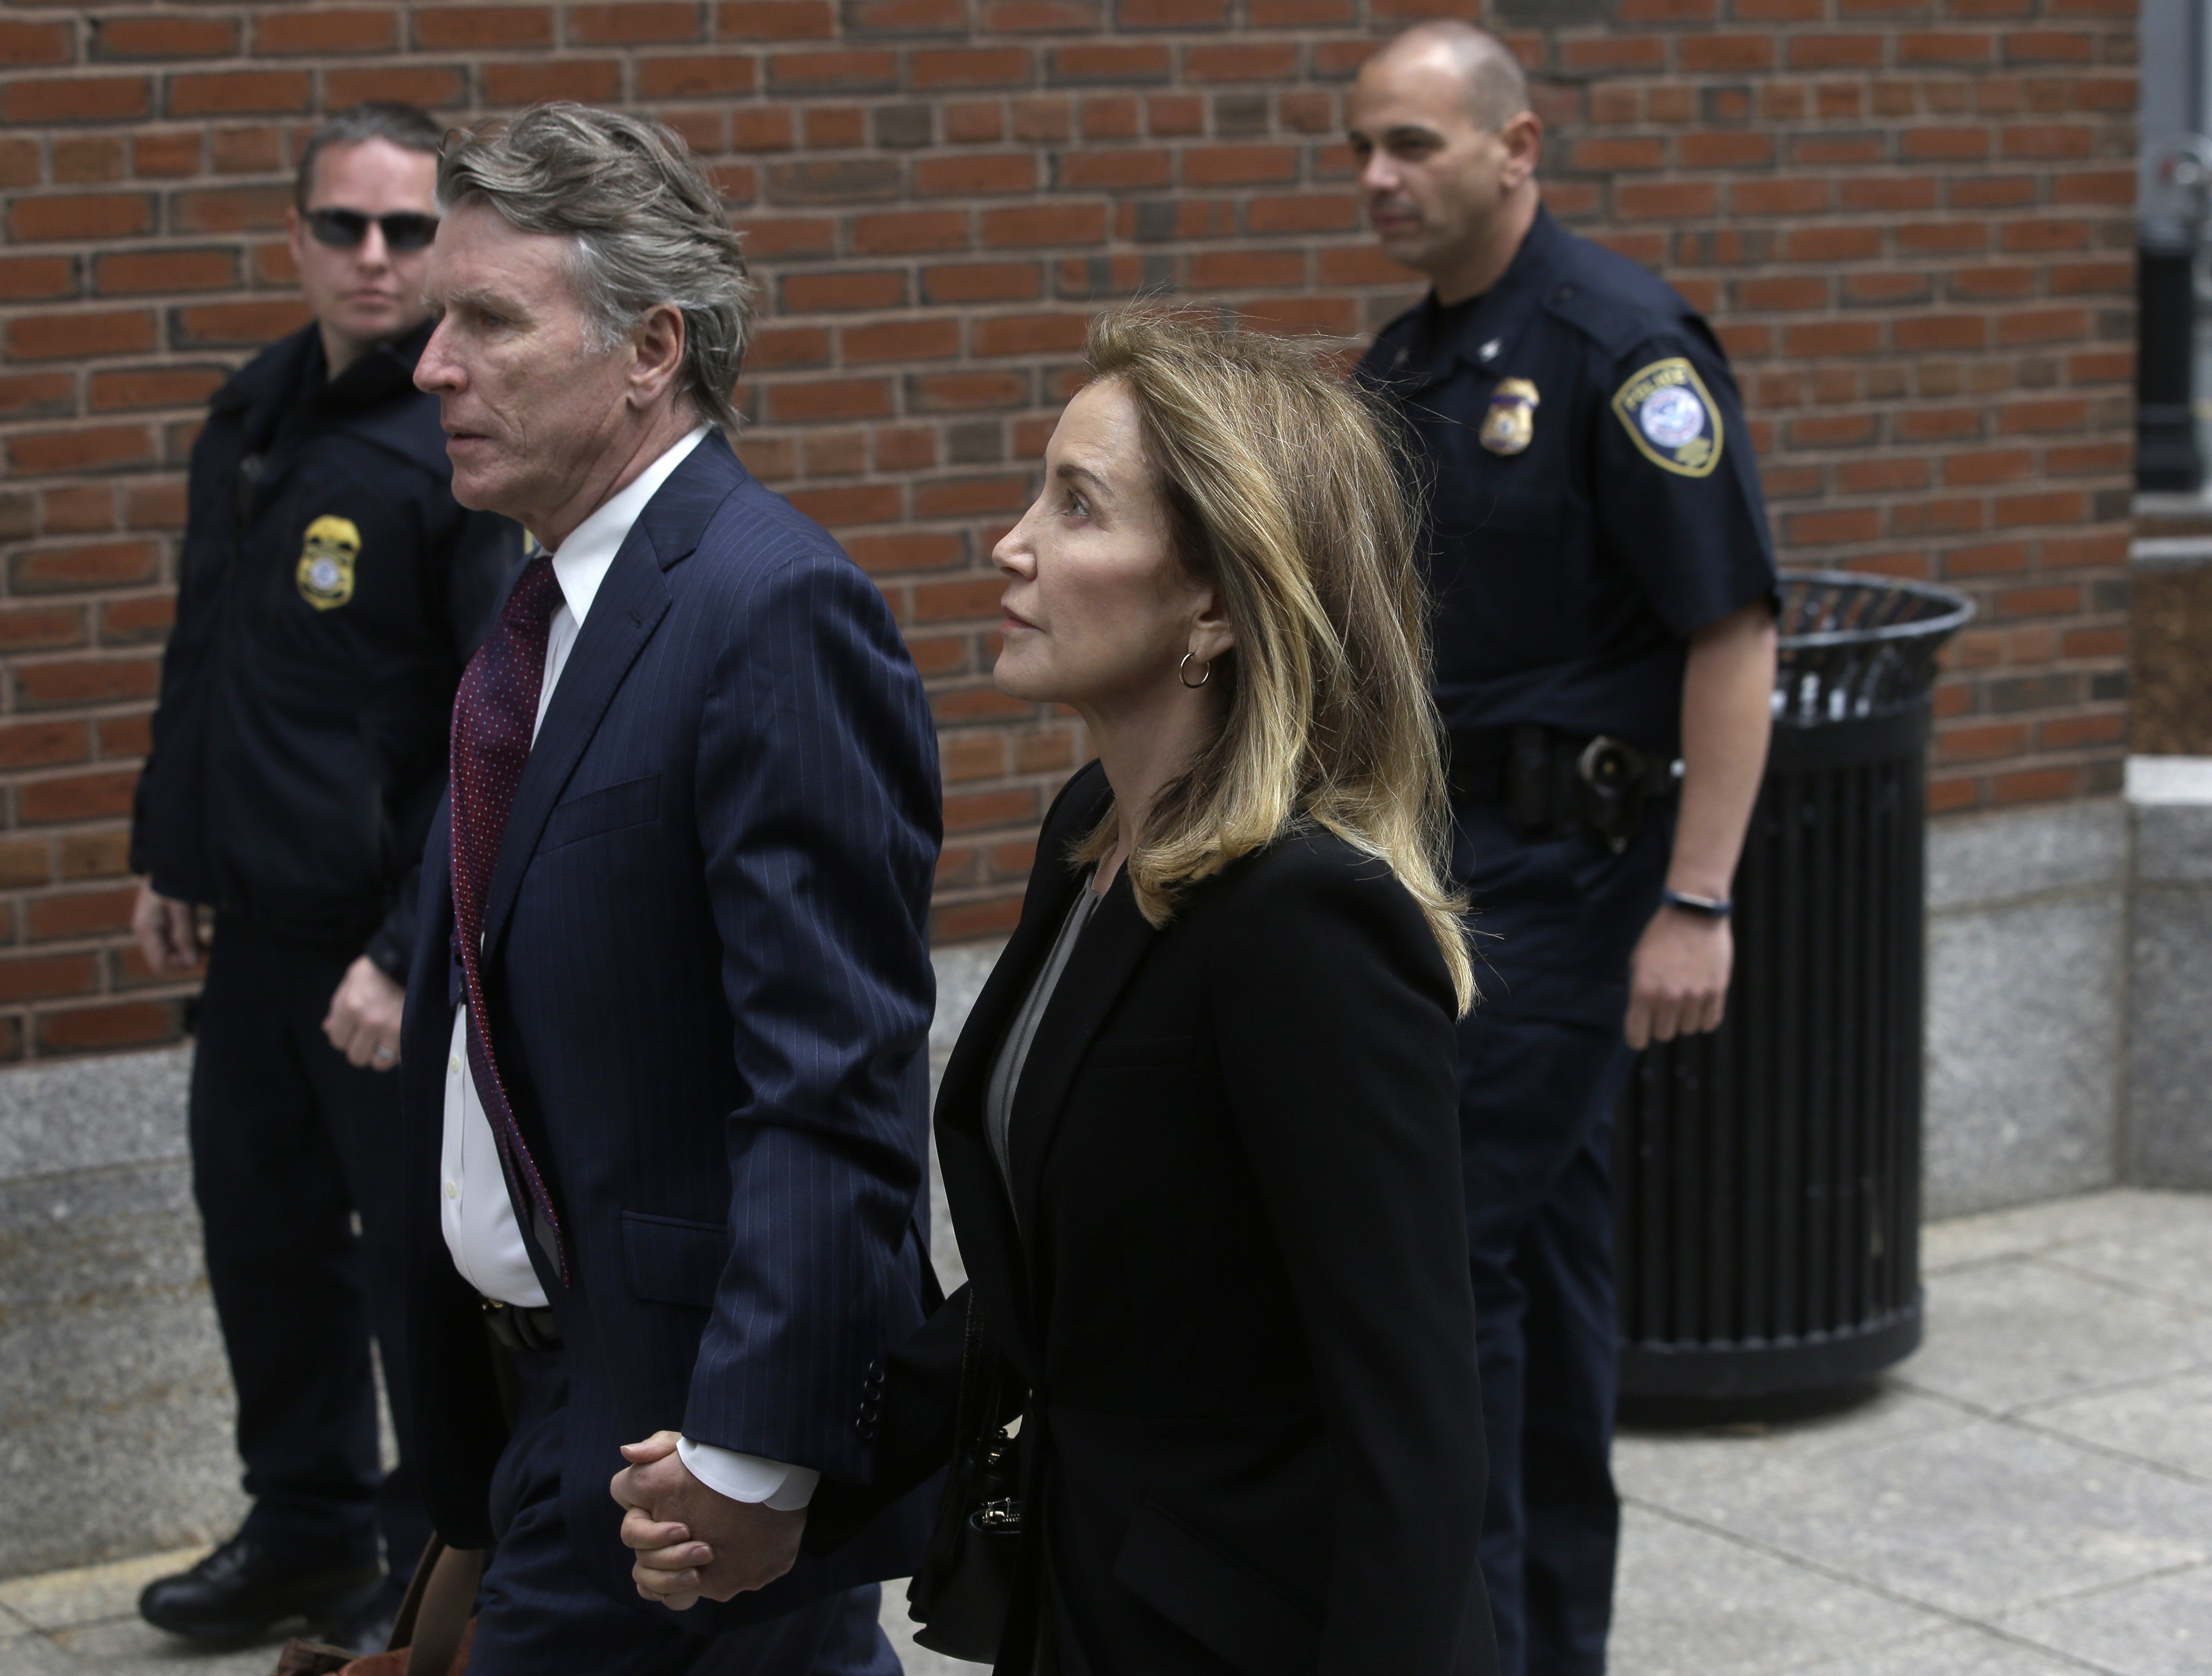 Actress Felicity Huffman arrives with her brother Moore Huffman Jr., at federal court Monday, May 13, 2019, in Boston, where she is scheduled to plead guilty to charges in a nationwide college admissions bribery scandal.